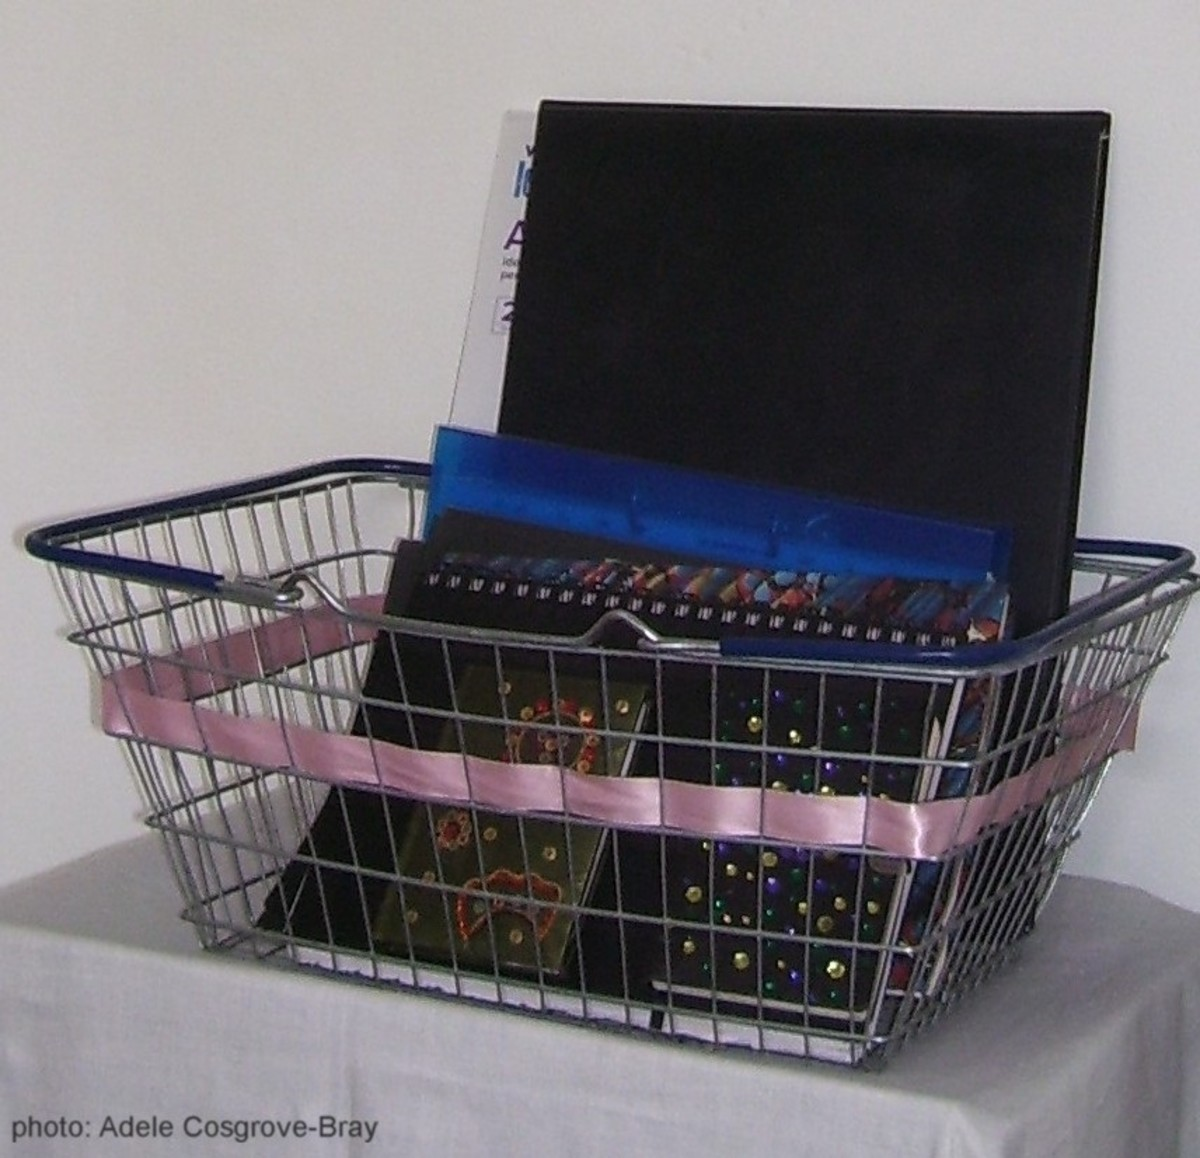 My recent sketchbooks, stored easily in a wire shopping basket.